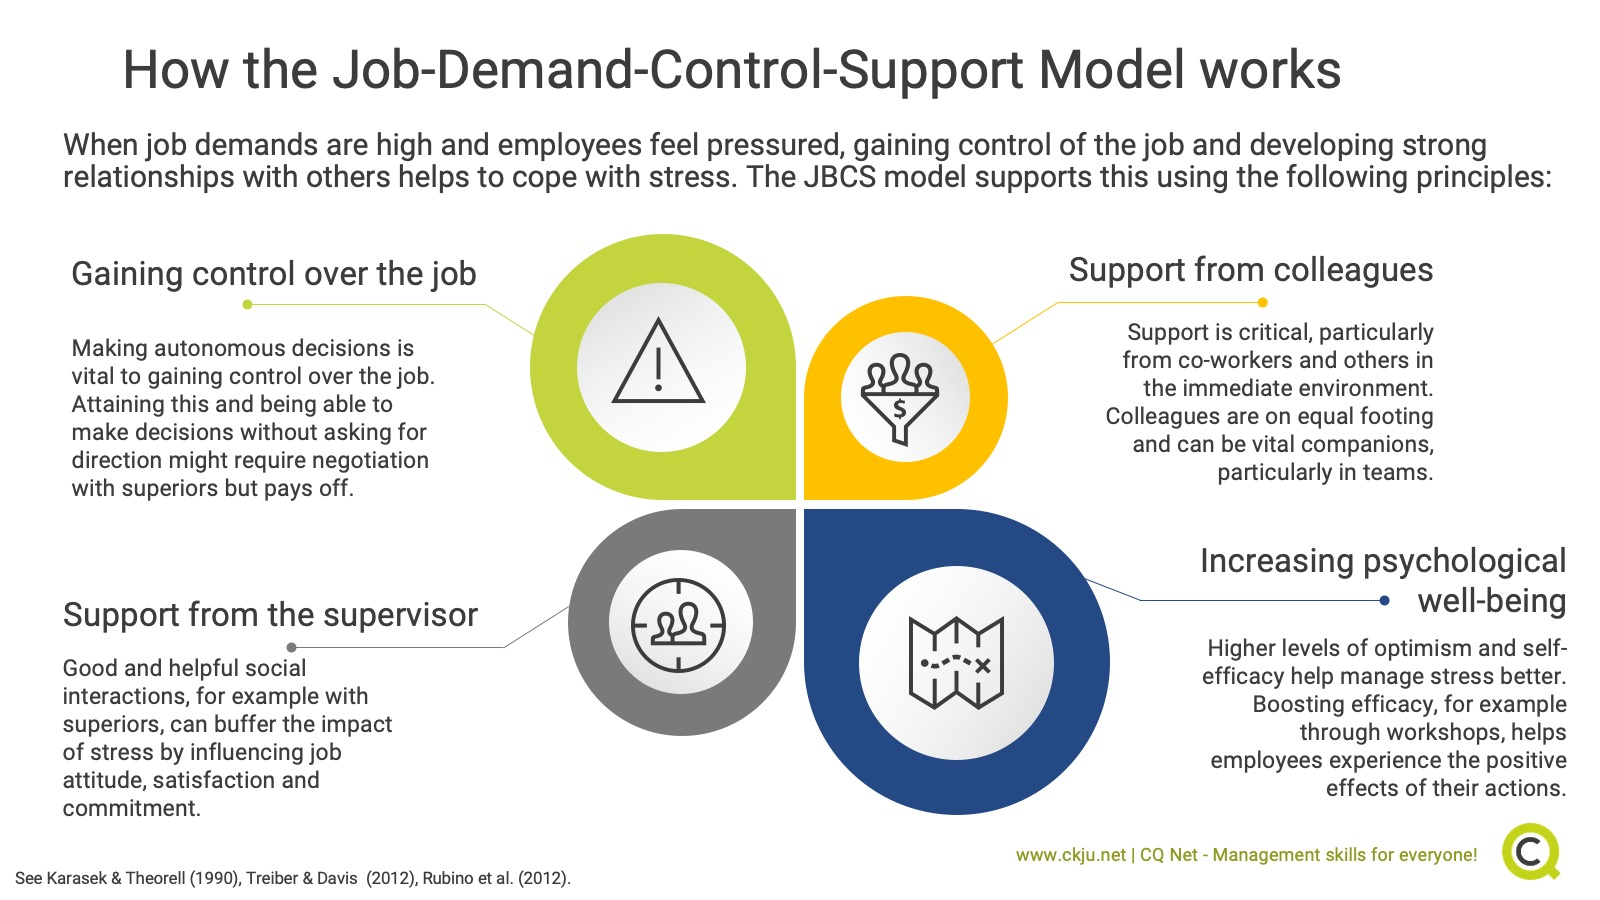 THe JDCS support models works to alleviate workplace stress